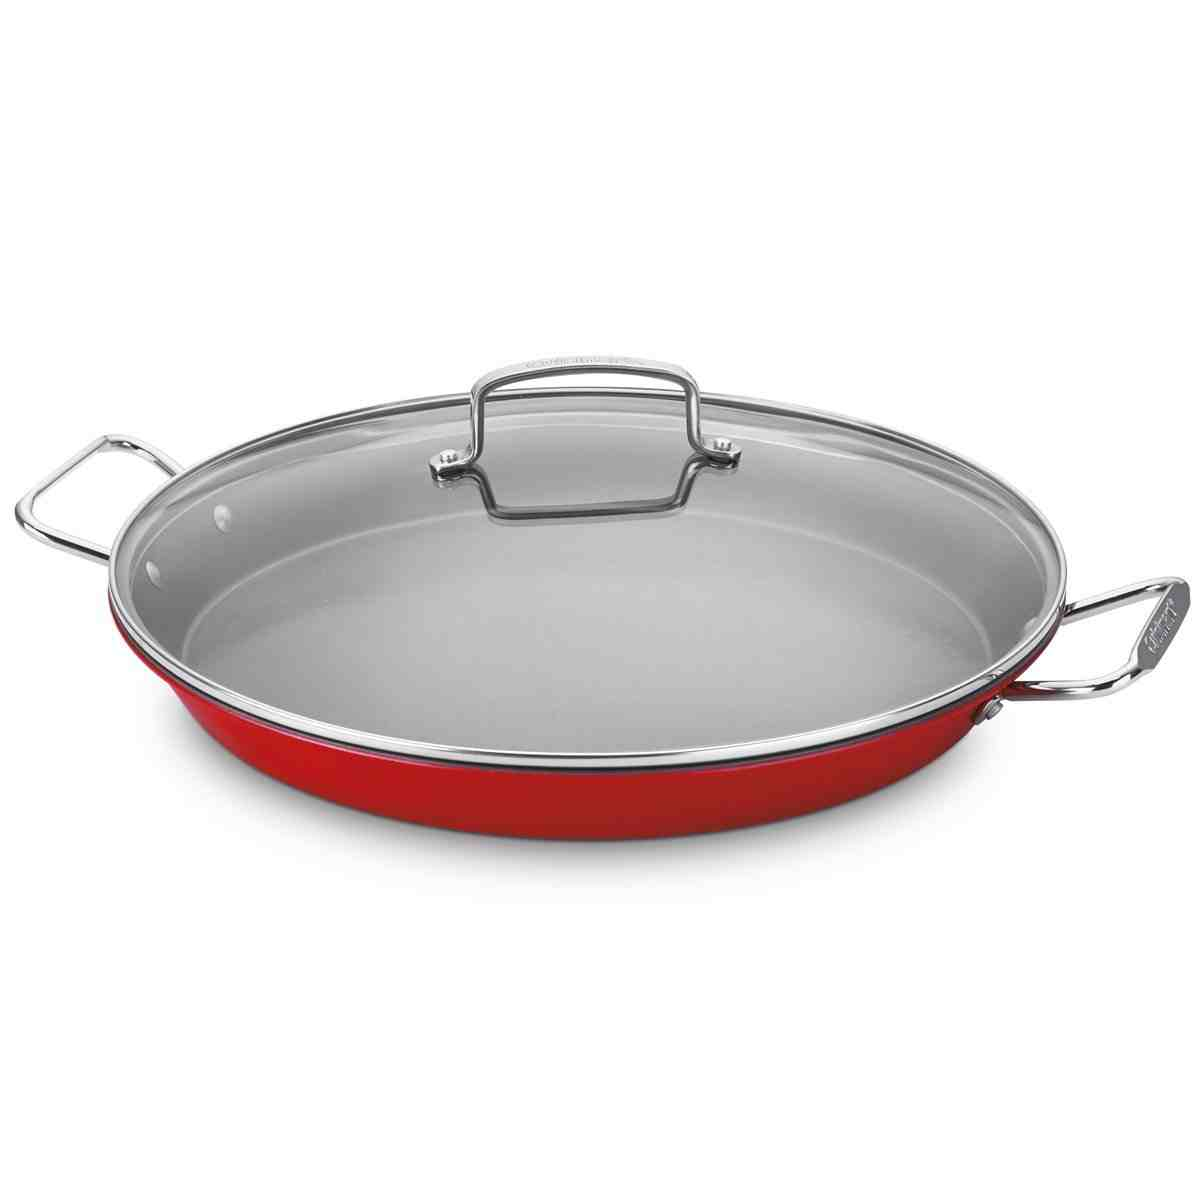 "Cuisinart 15"" Paella Pan with Lid"